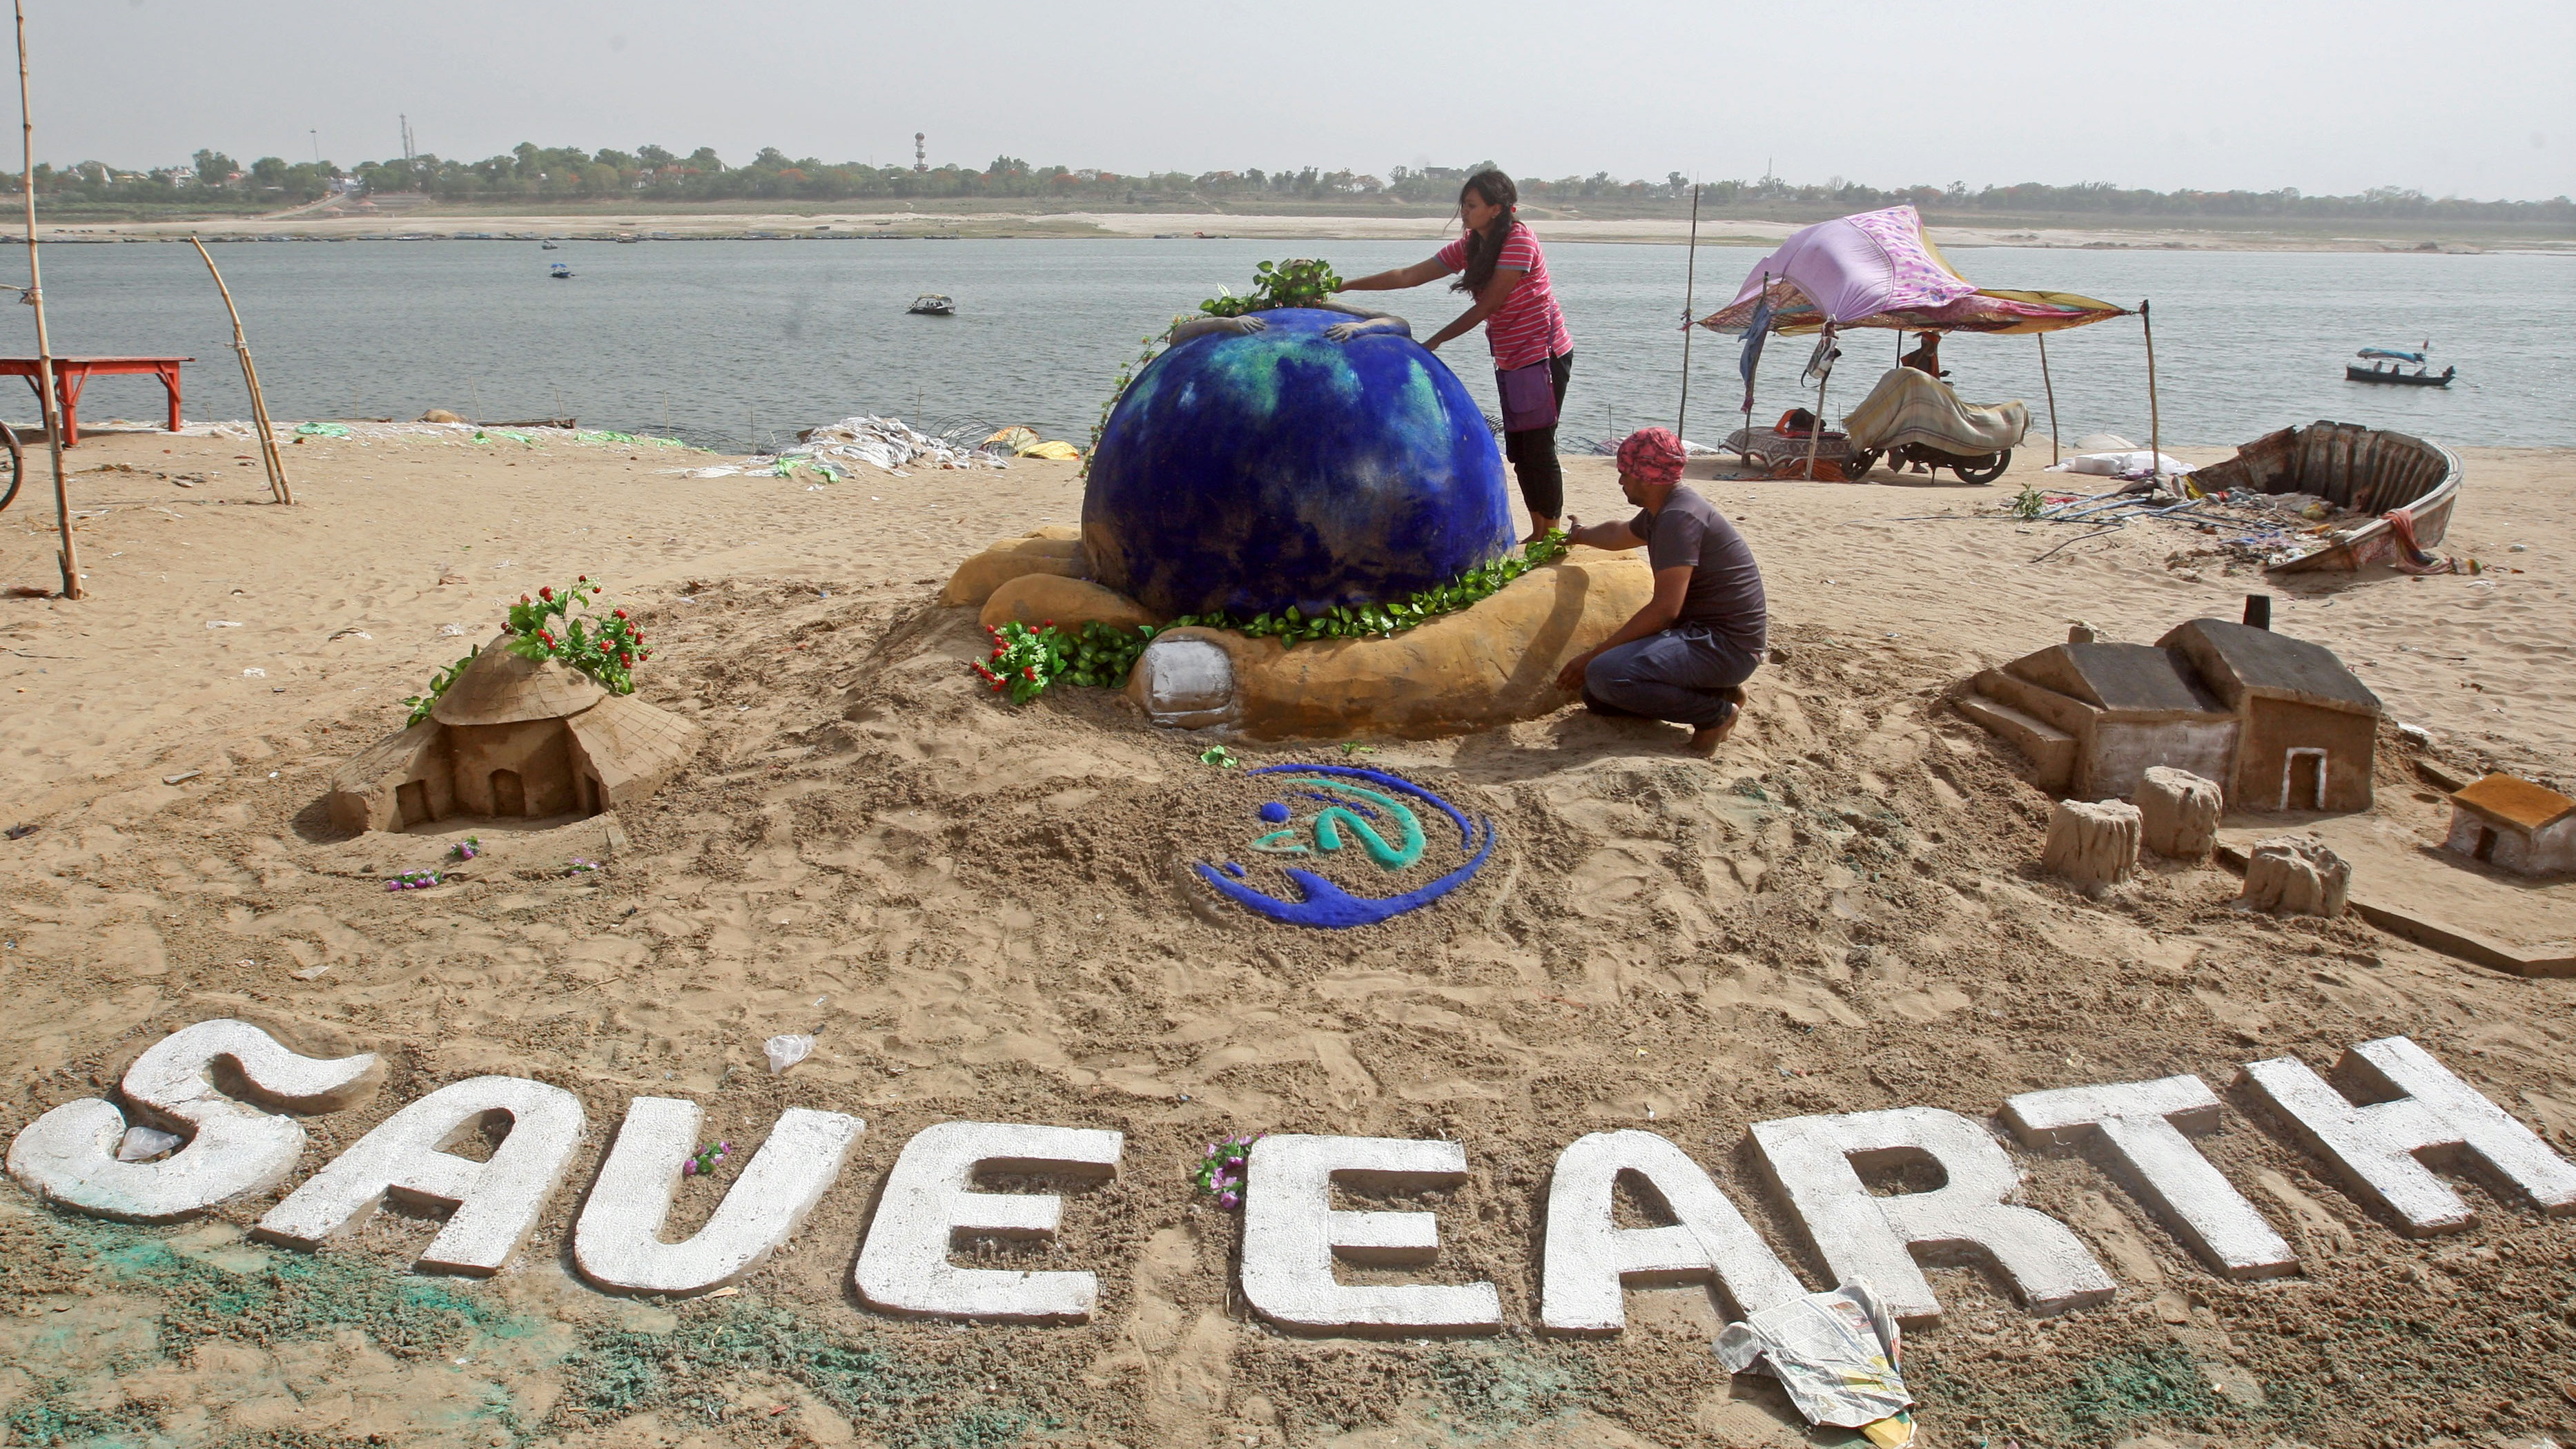 children on a beach on earth day